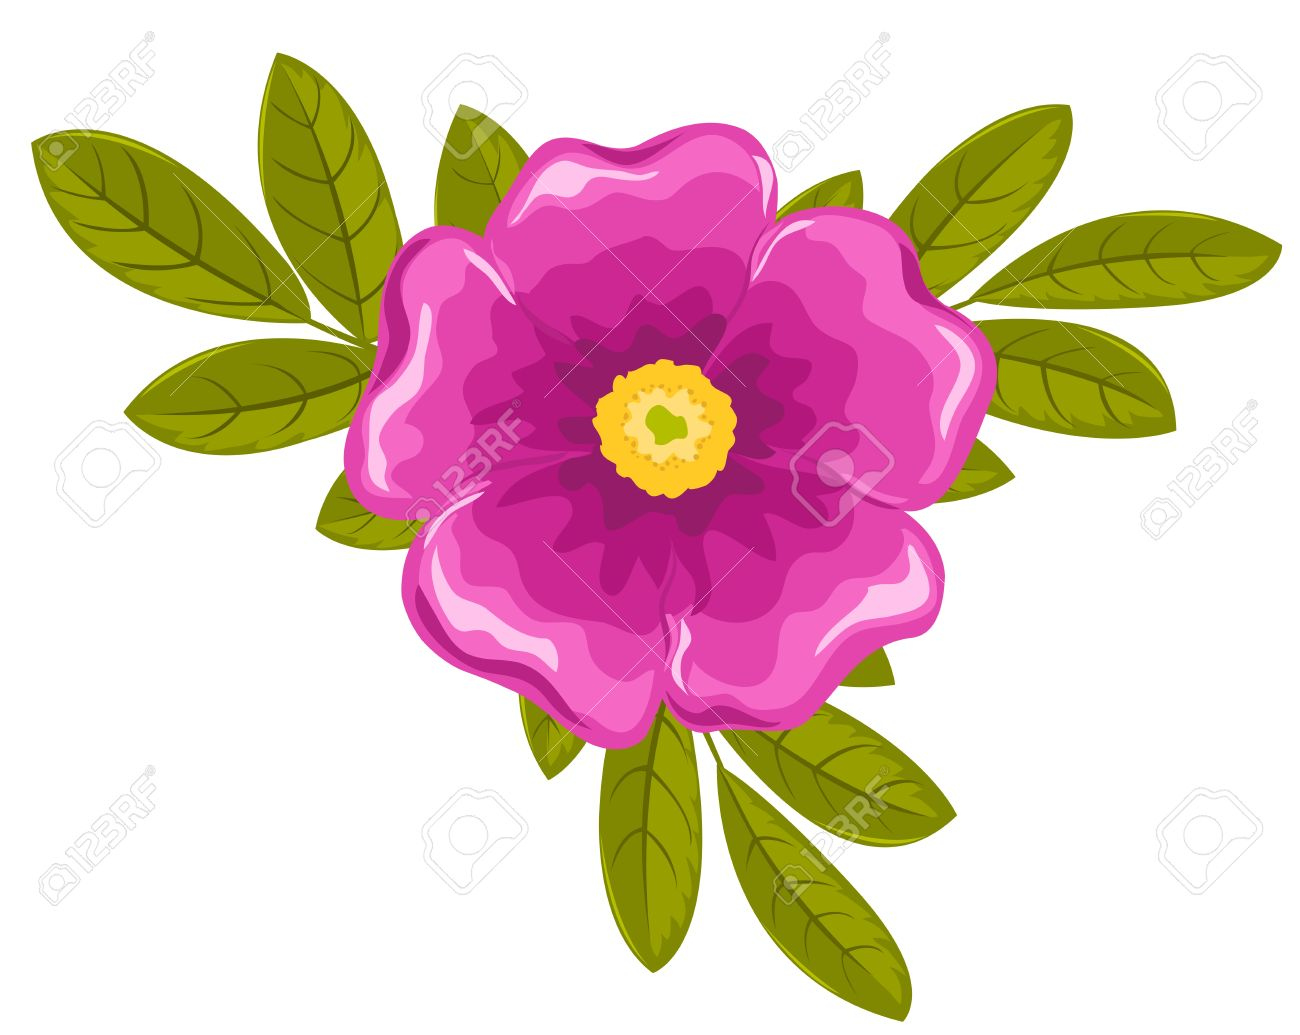 Dogrose Flower And Leaves. Vector Illustration. Isolated On White.